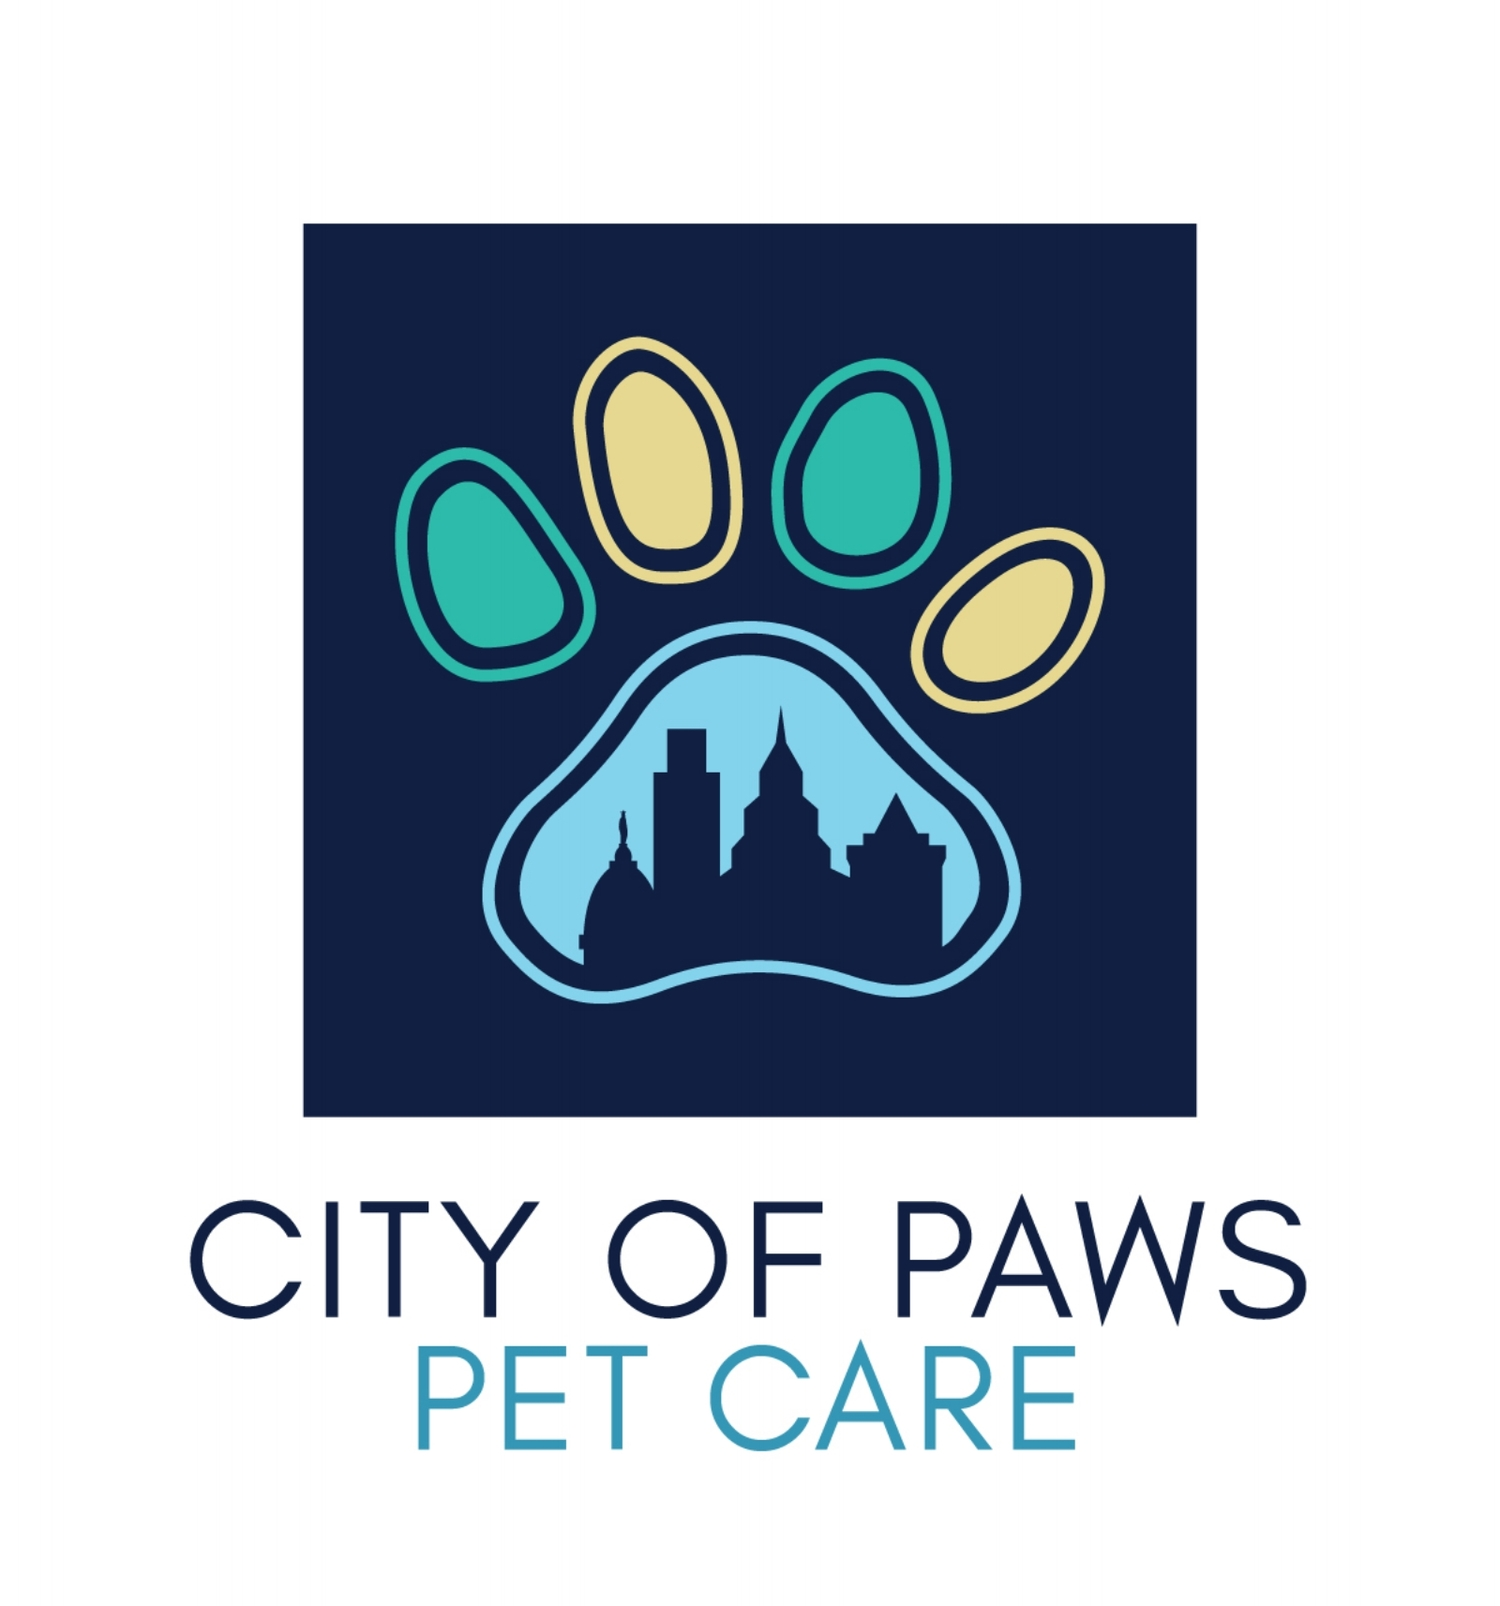 City of Paws Pet Care: Manayunk Dog Walking & Pet Sitting